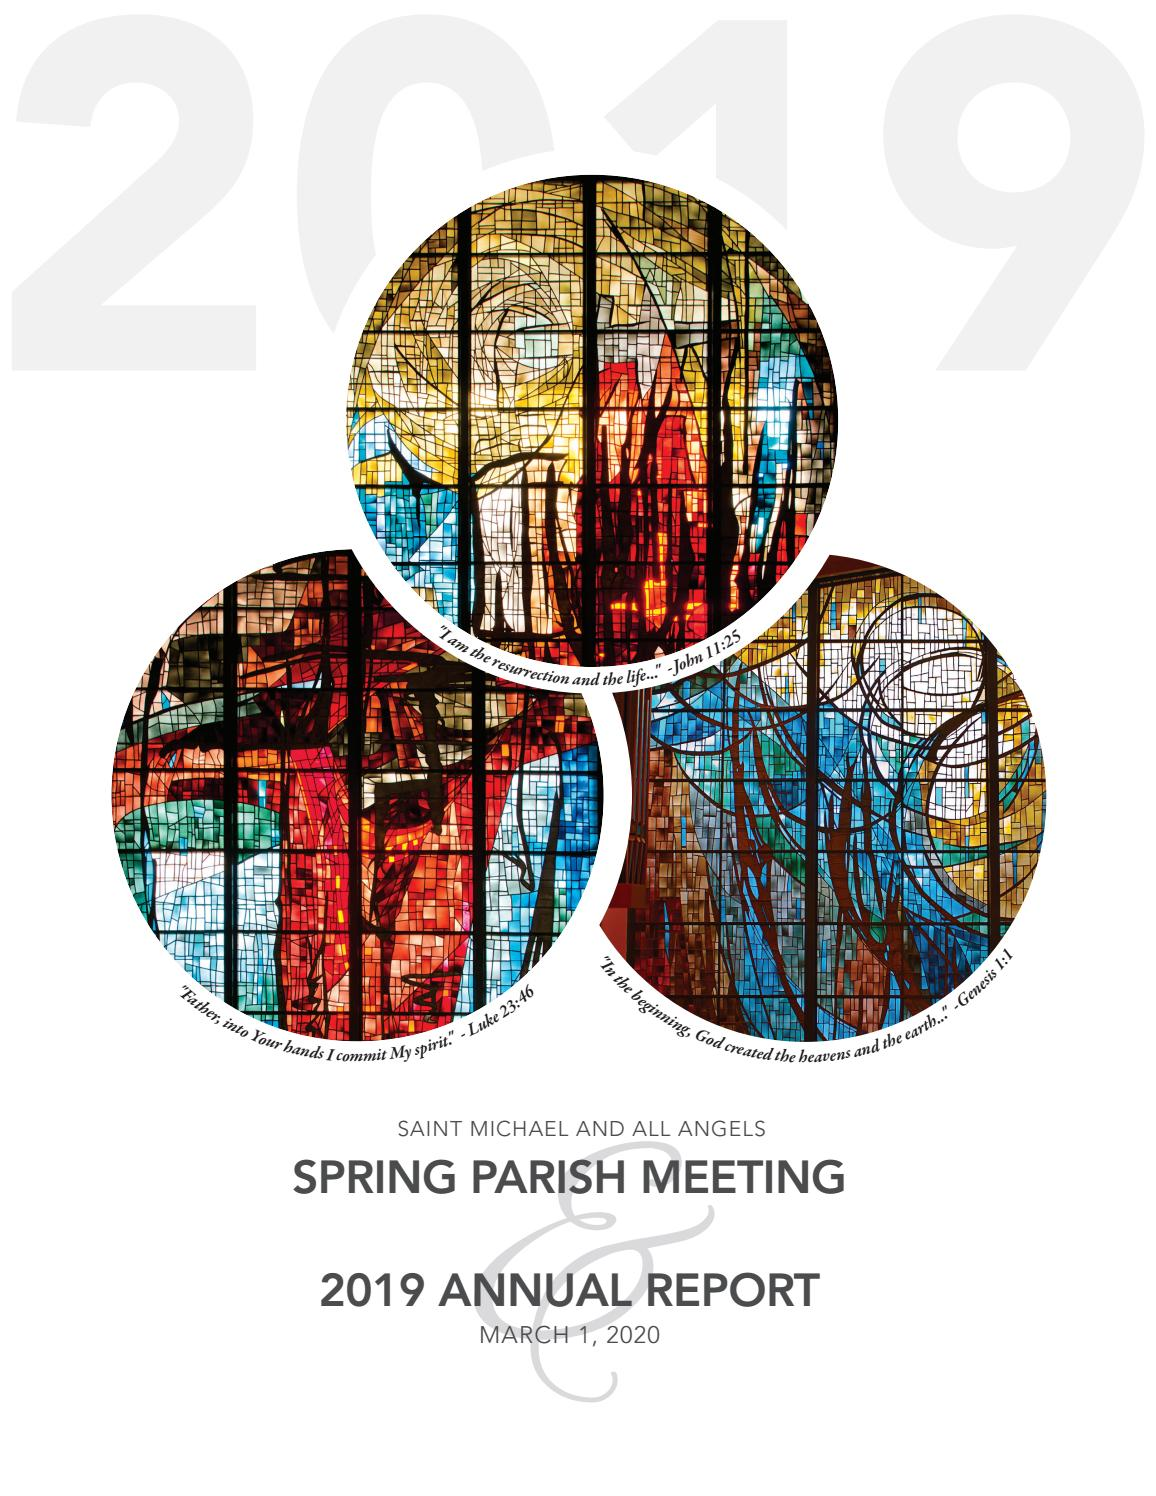 Annual Report 2019 By Saint Michael And All Angels Issuu